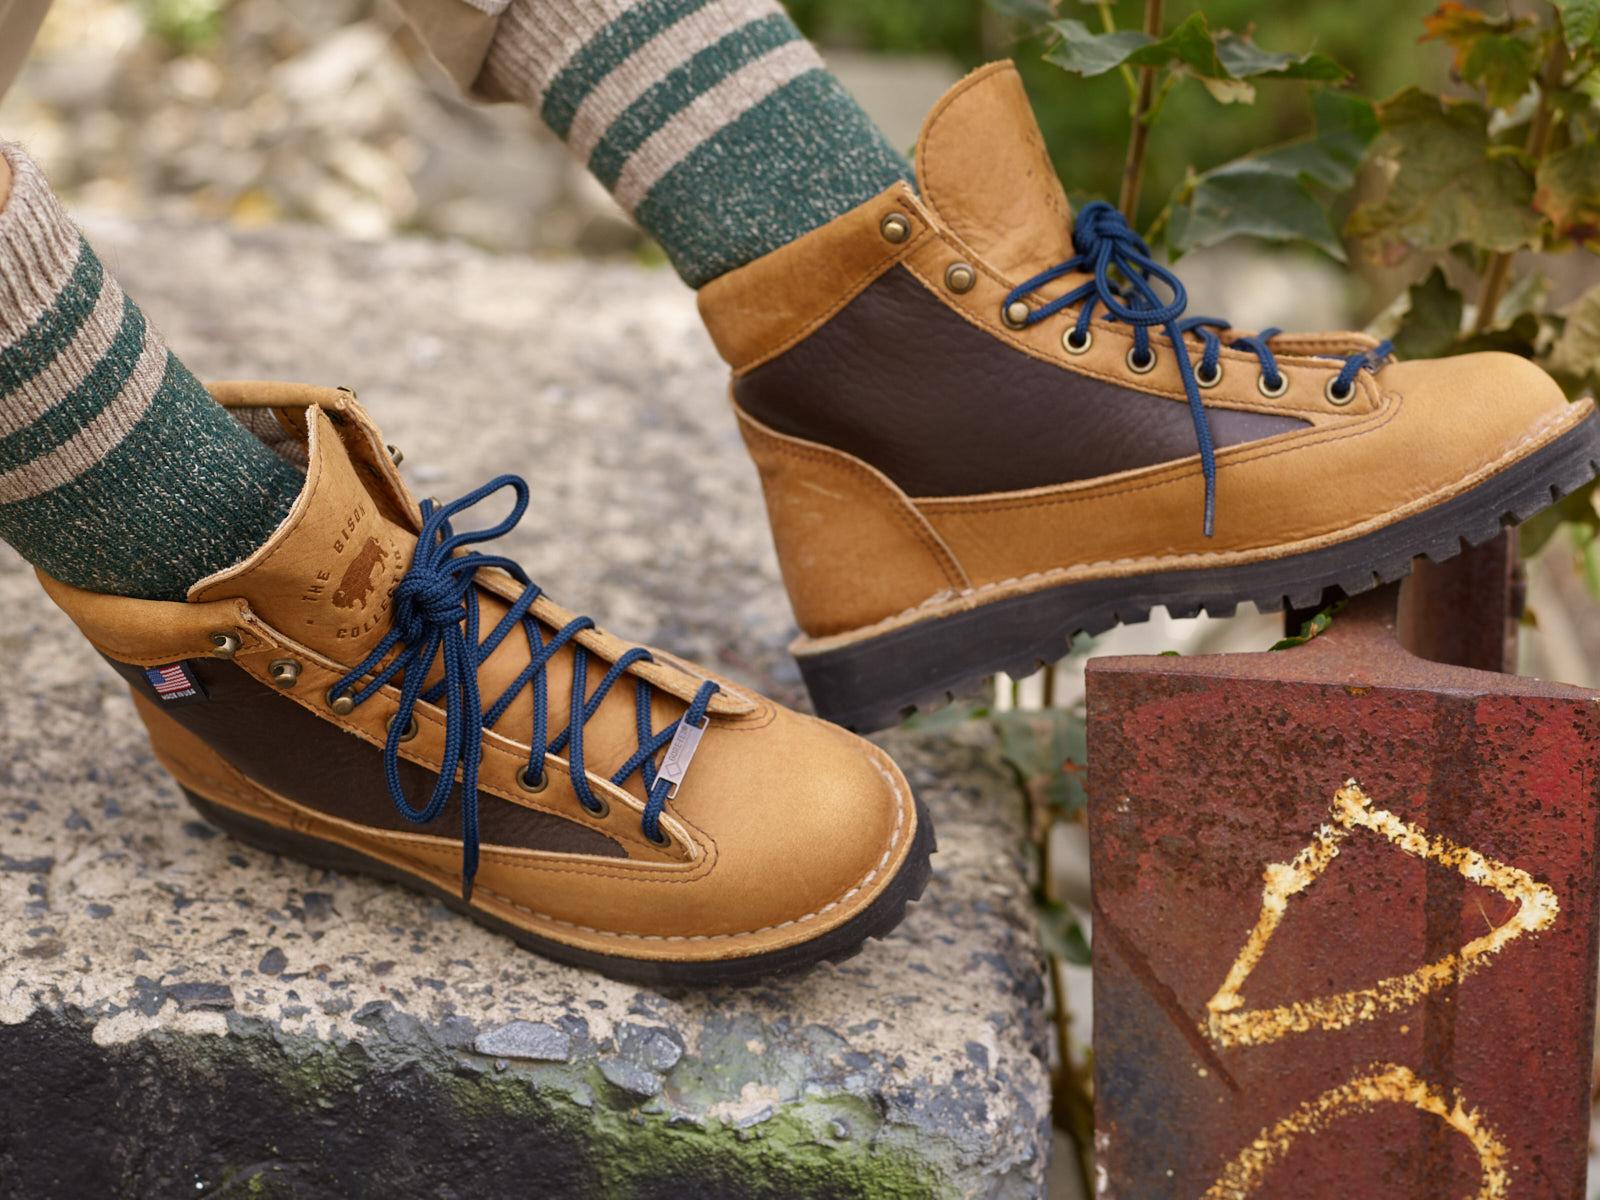 Rugged and long-lasting, these limited-edition boots are perfect for a lifetime of outdoor adventures.